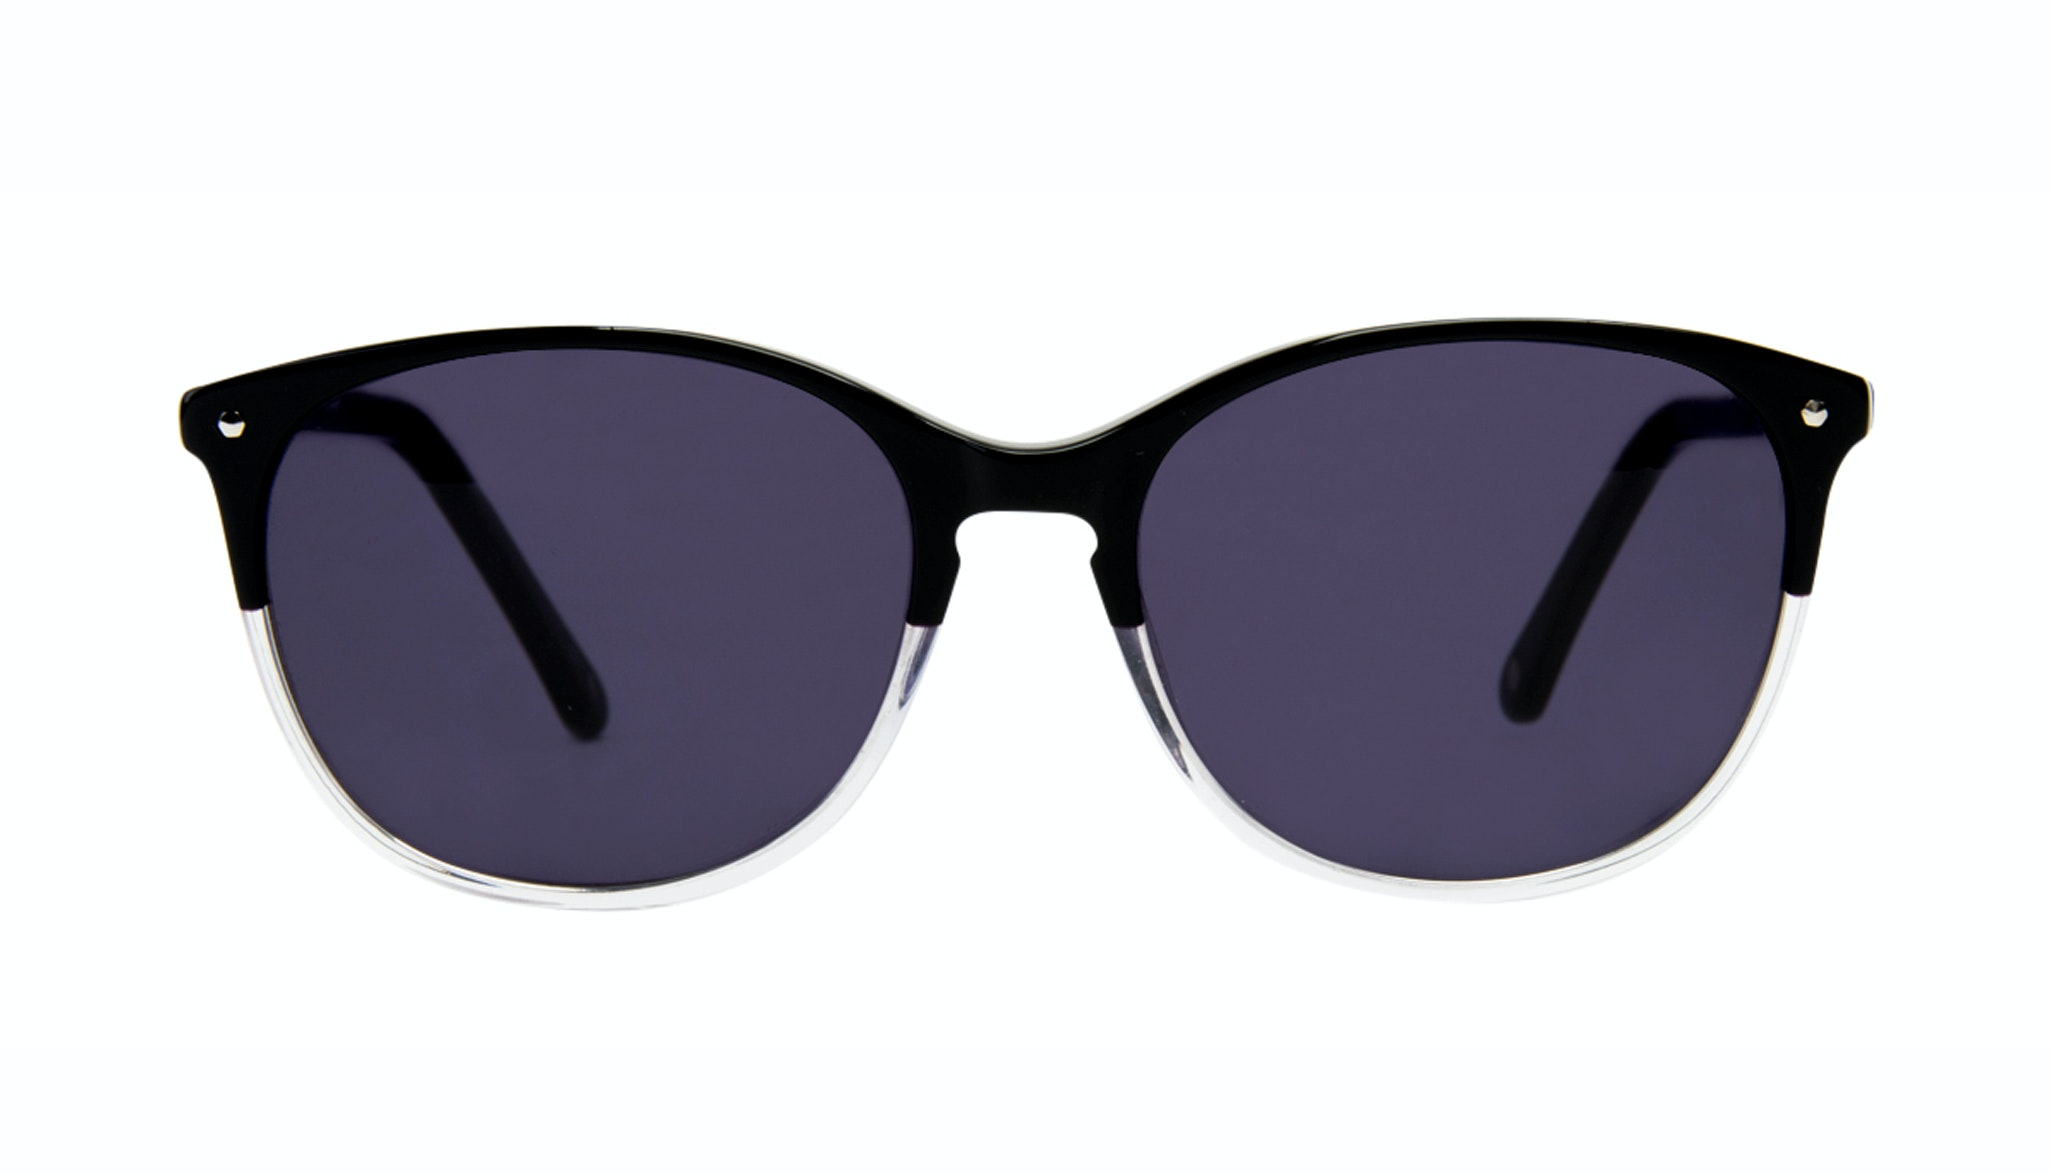 Affordable Fashion Glasses Rectangle Square Round Sunglasses Women Nadine Two Tone Black